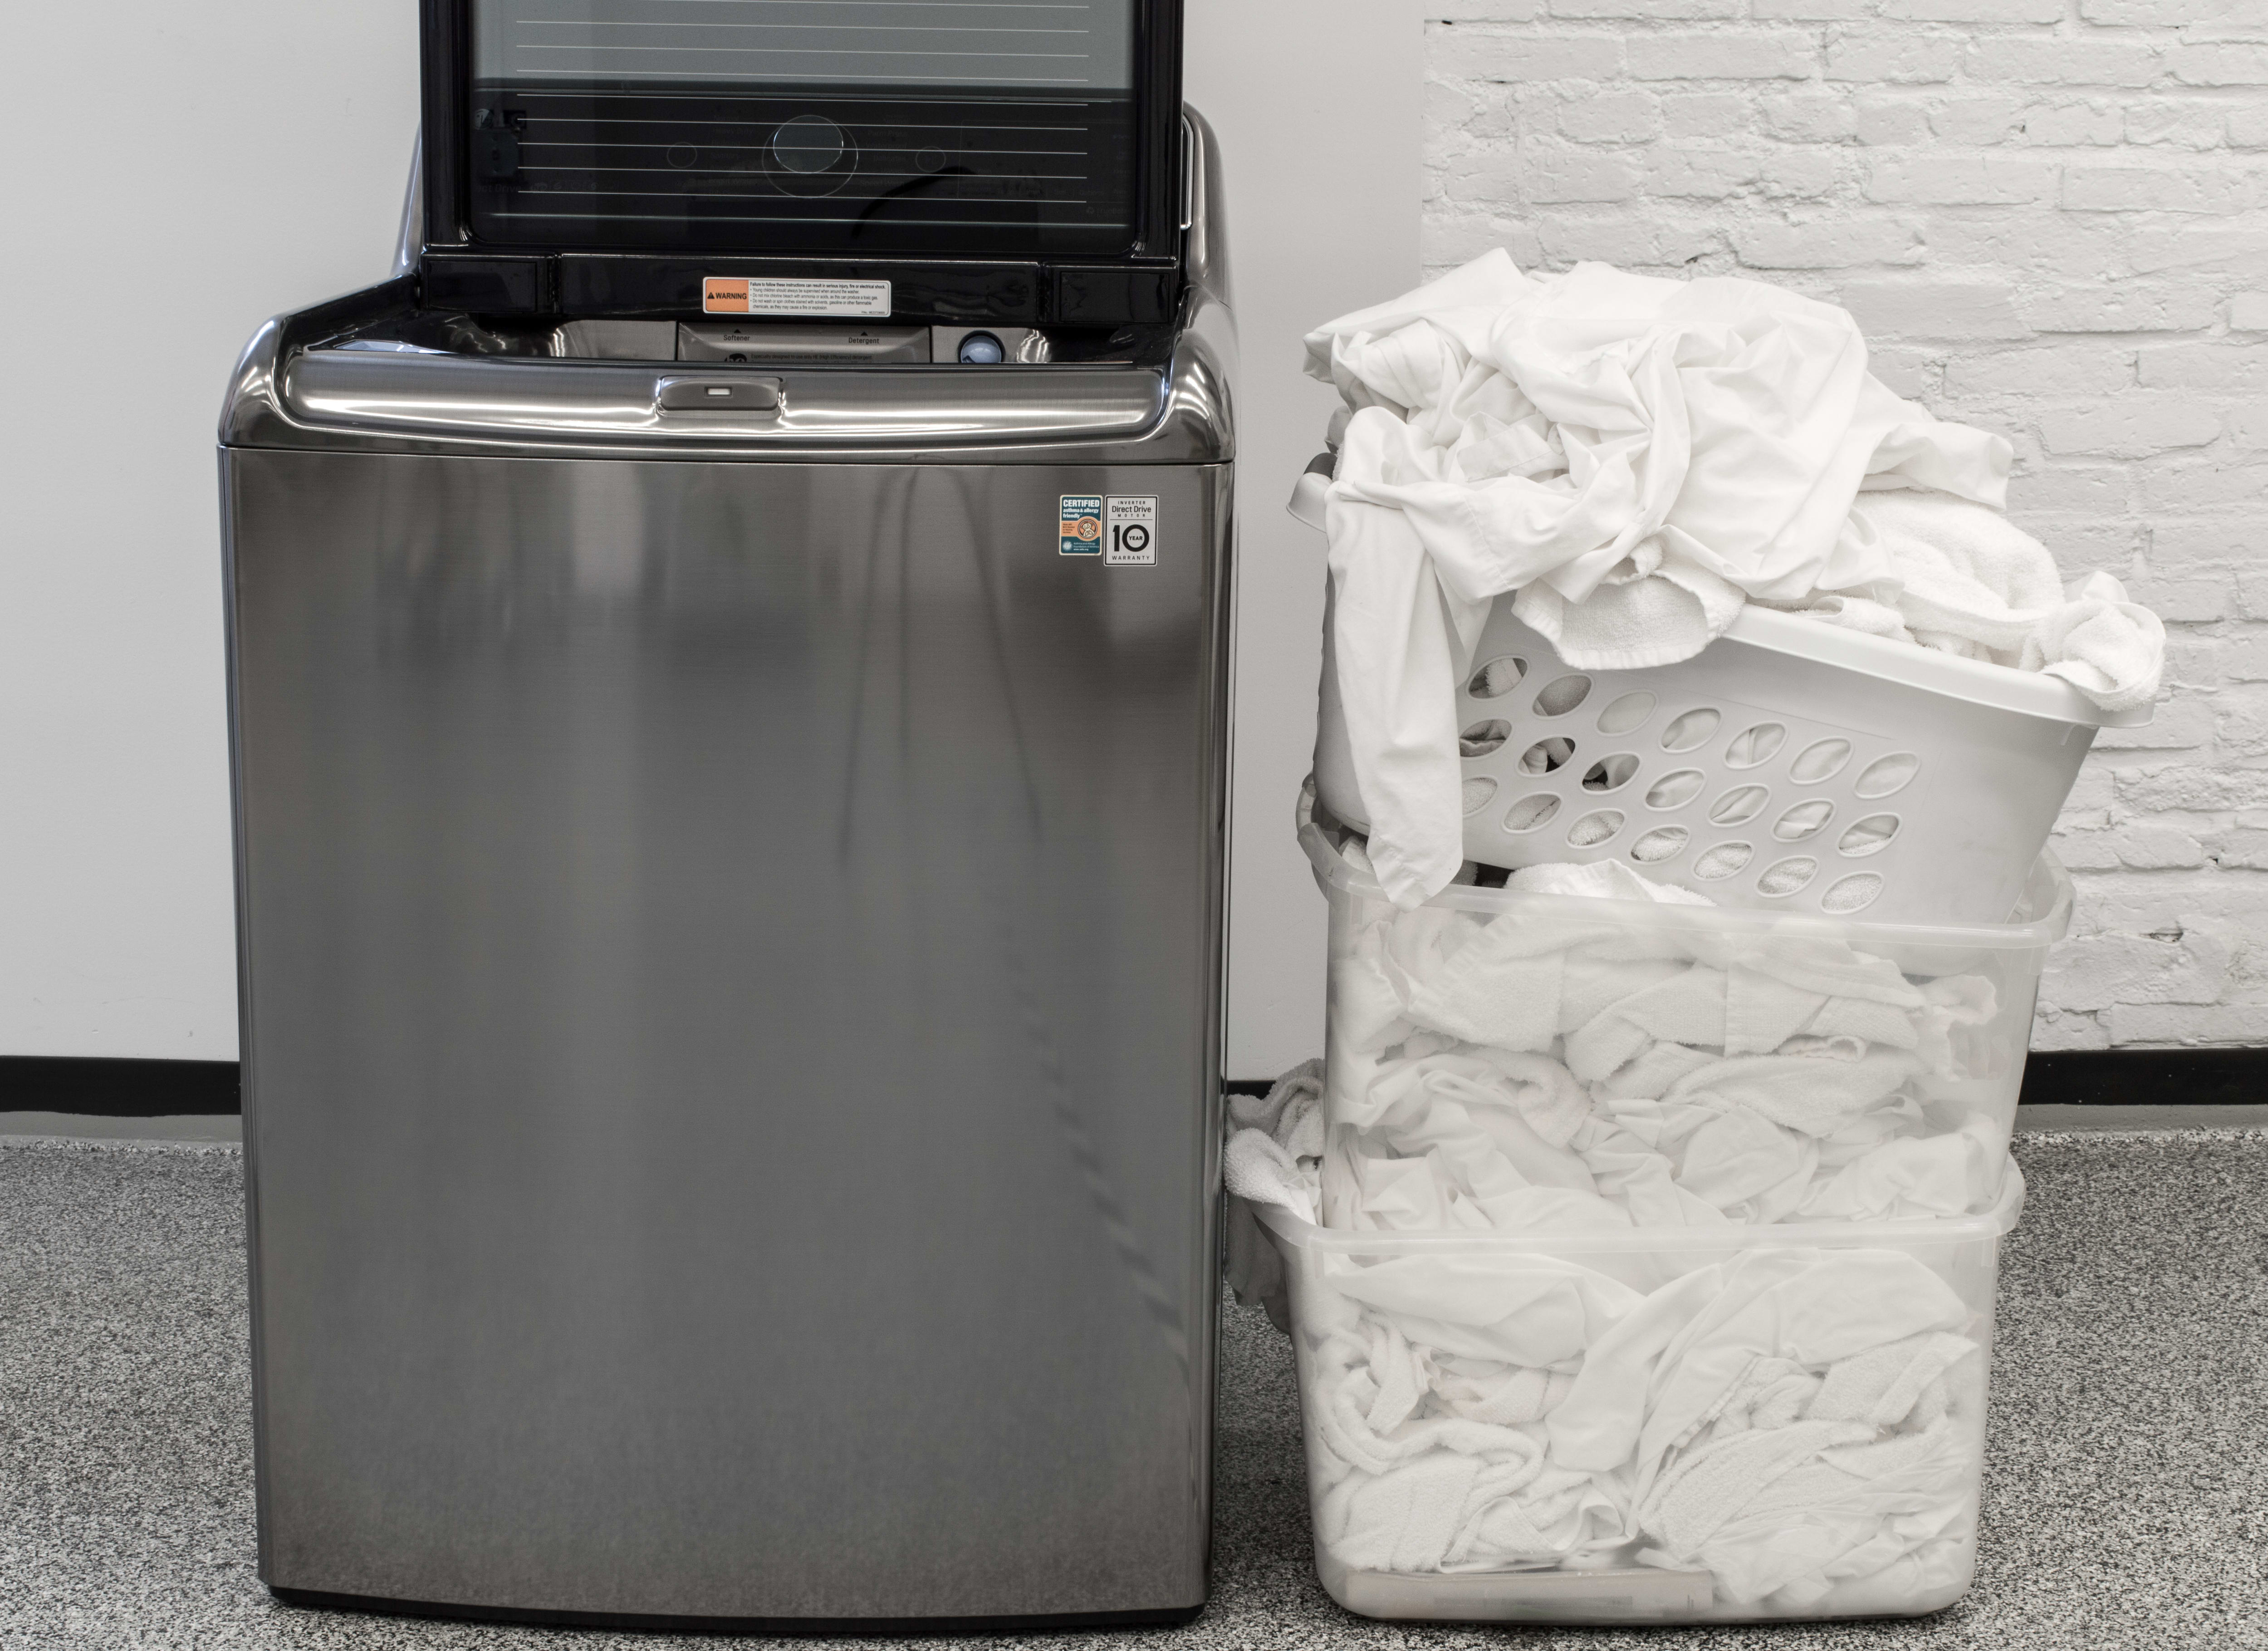 With a 5.7-cu.-ft. capacity, you'll be able to do more laundry.